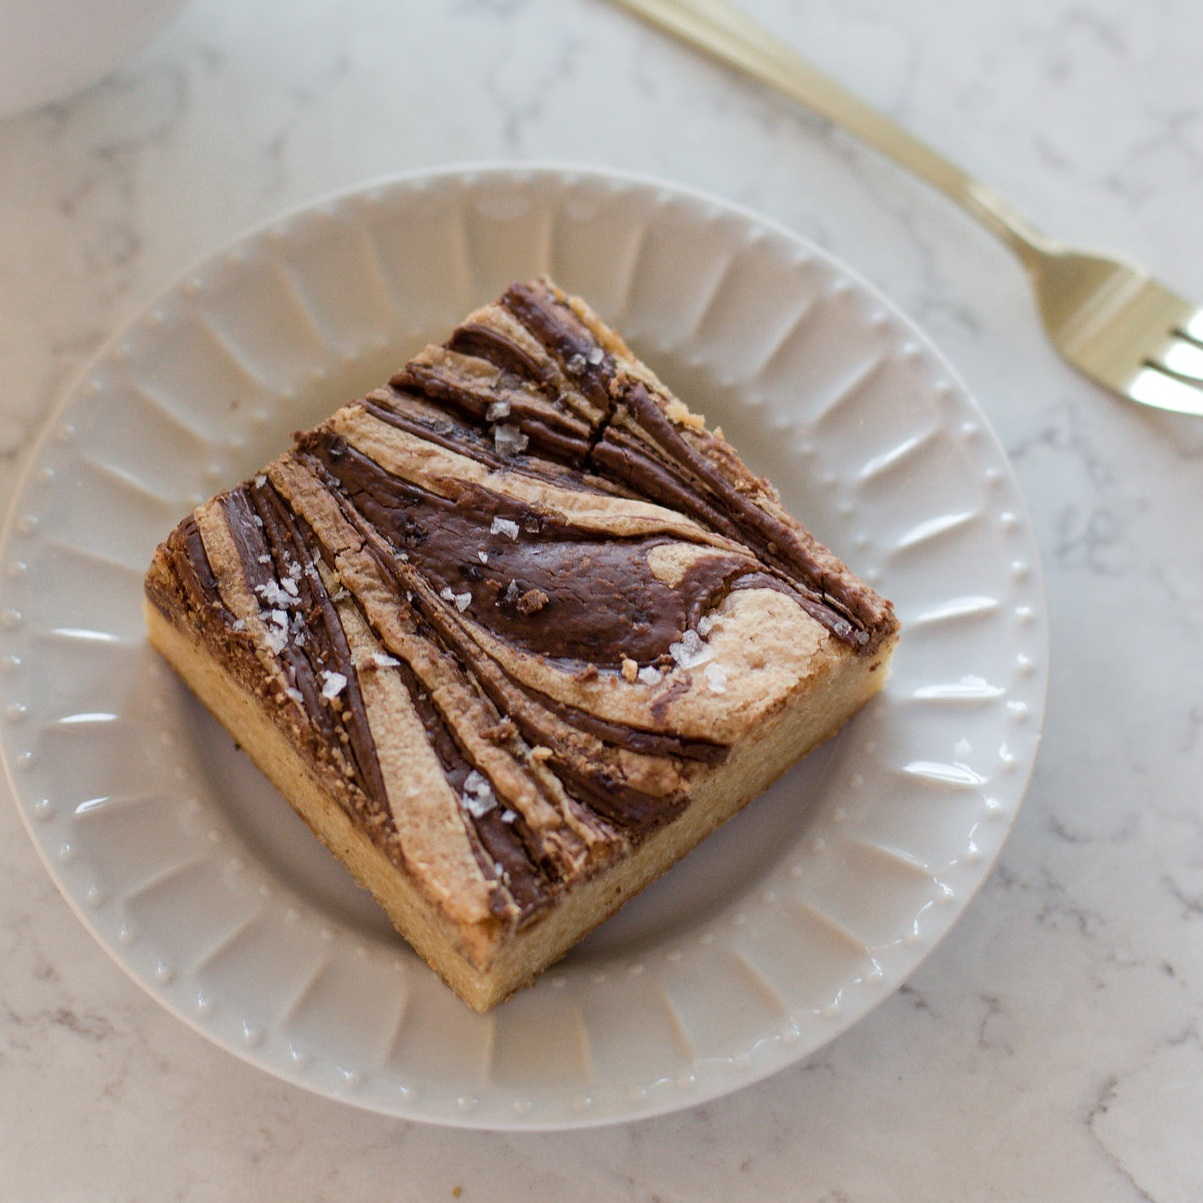 Salted Nutella Blondie